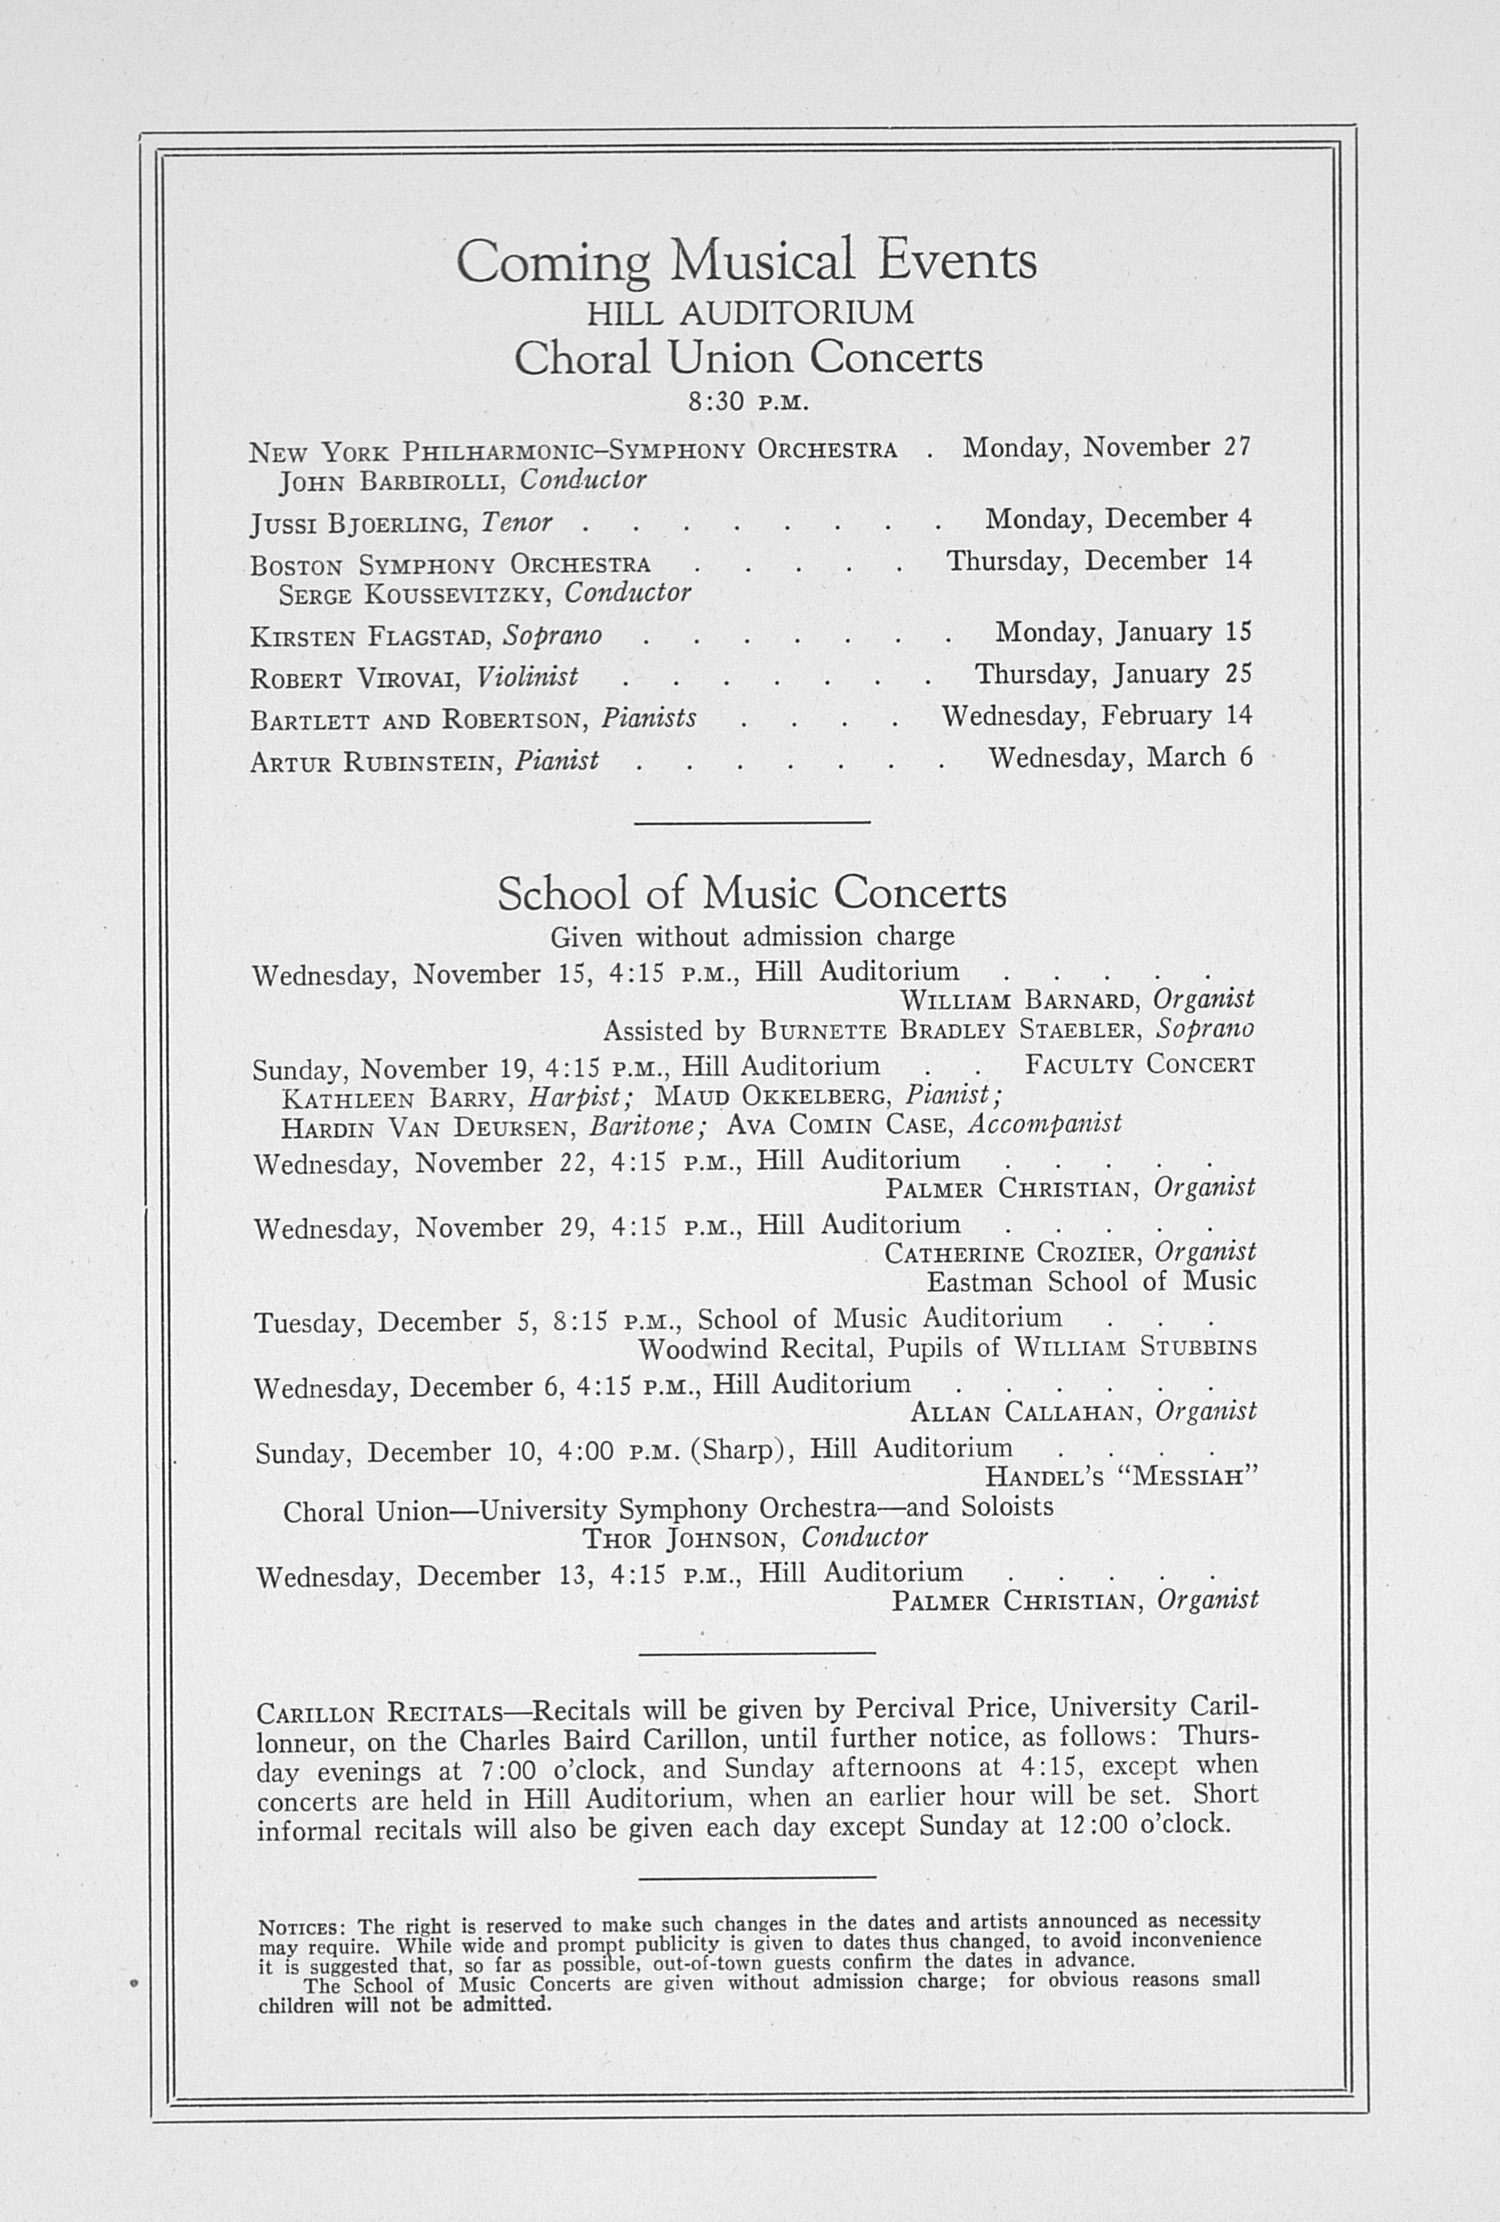 UMS Concert Program, November 13, 1939: Sixty-first Annual Choral Union Concert Series -- Alexander Kipnis image